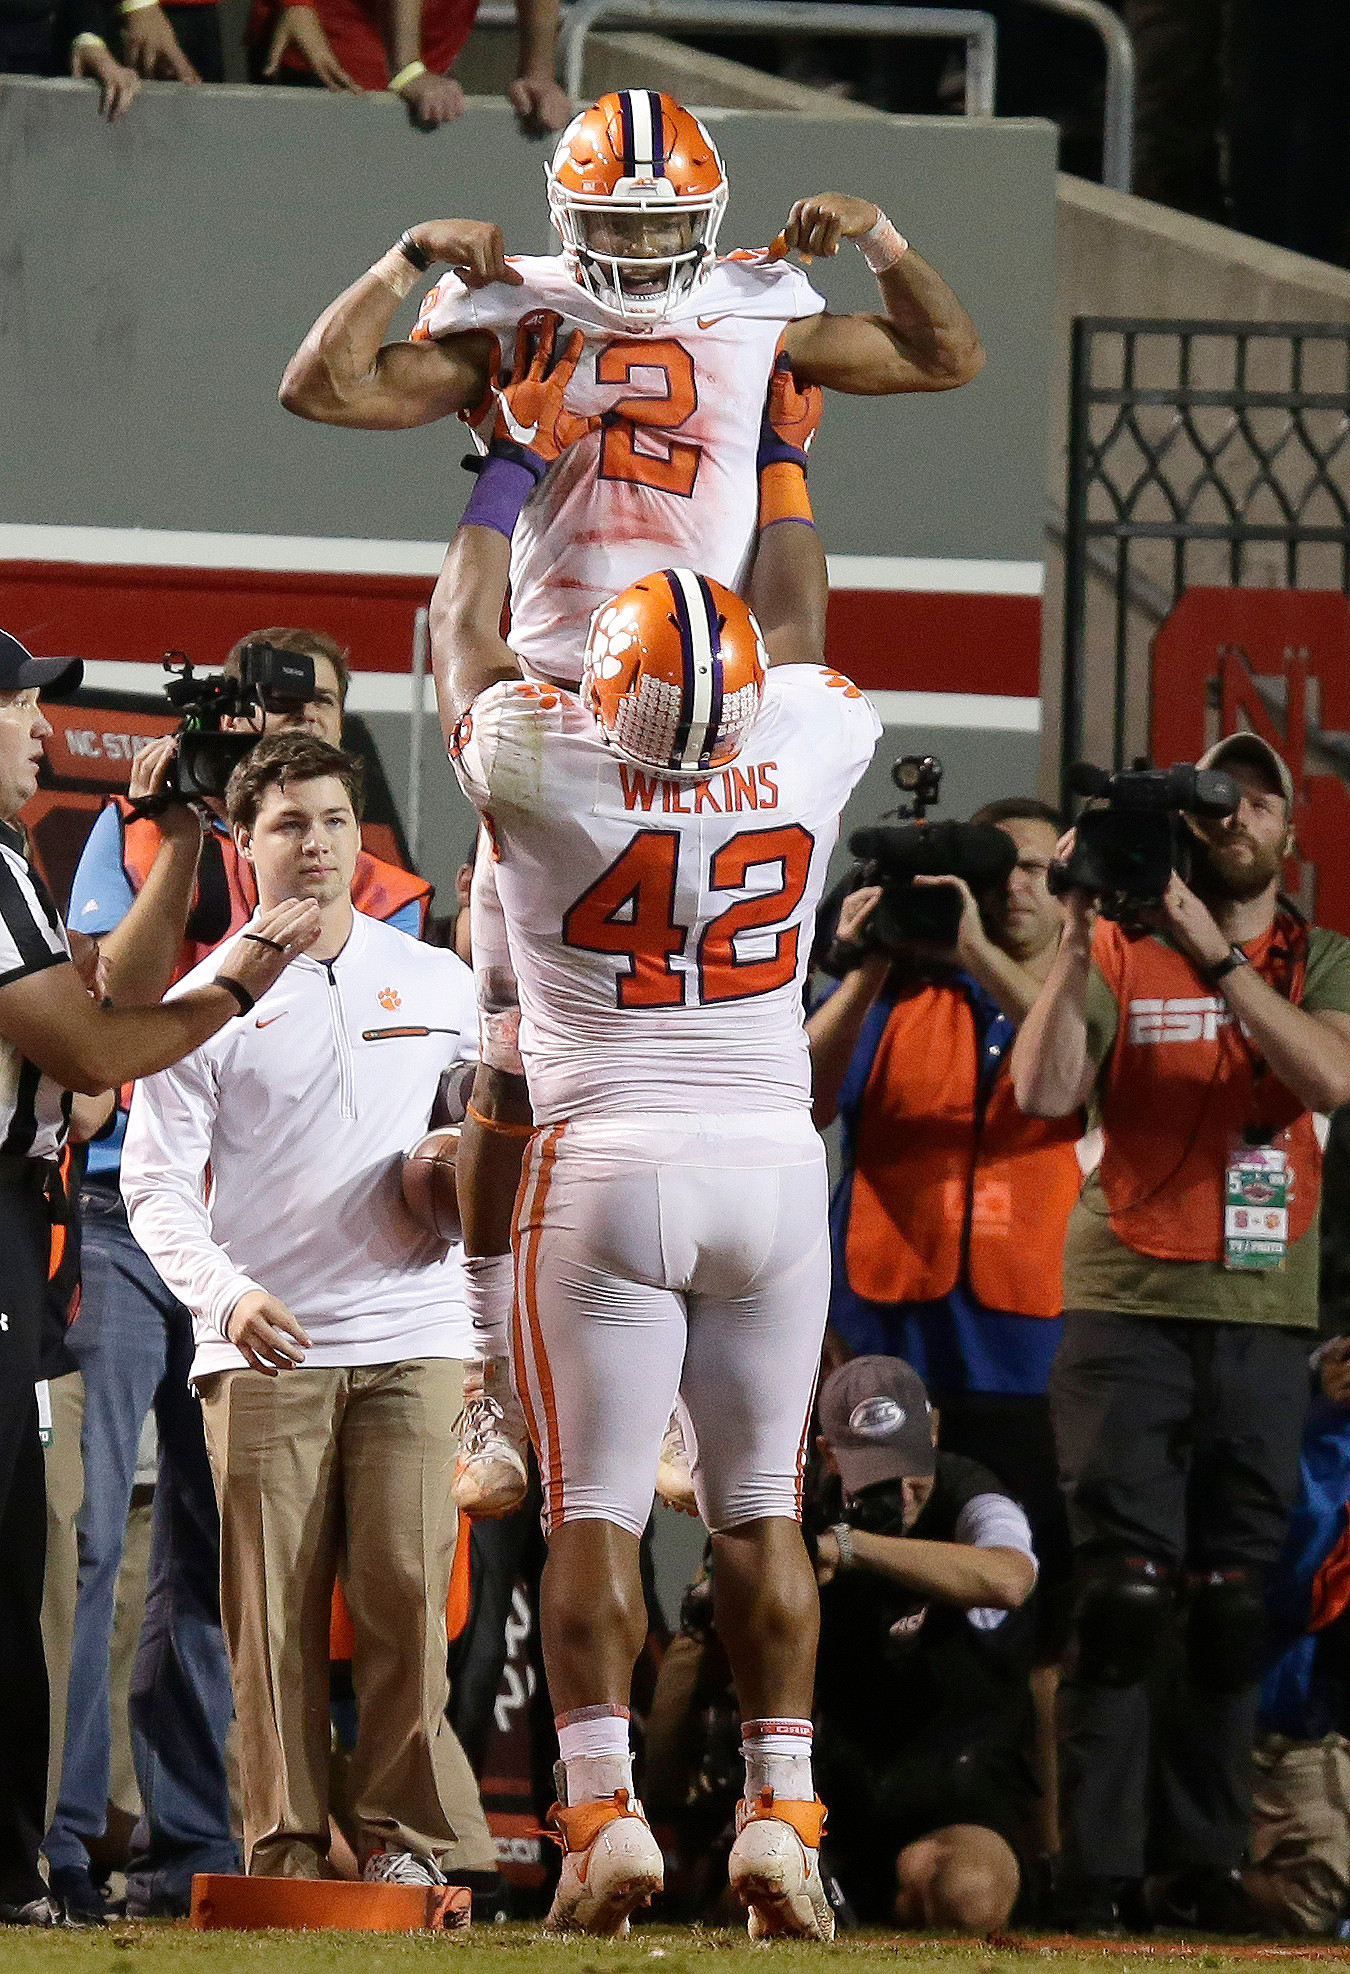 THE ASSOCIATED PRESSClemson's Christian Wilkins (42) lifts quarterback Kelly Bryant (2) in celebration after Bryant's touchdown run in the second half of the Tigers' 38-31 victory over North Carolina State on Saturday in Raleigh.